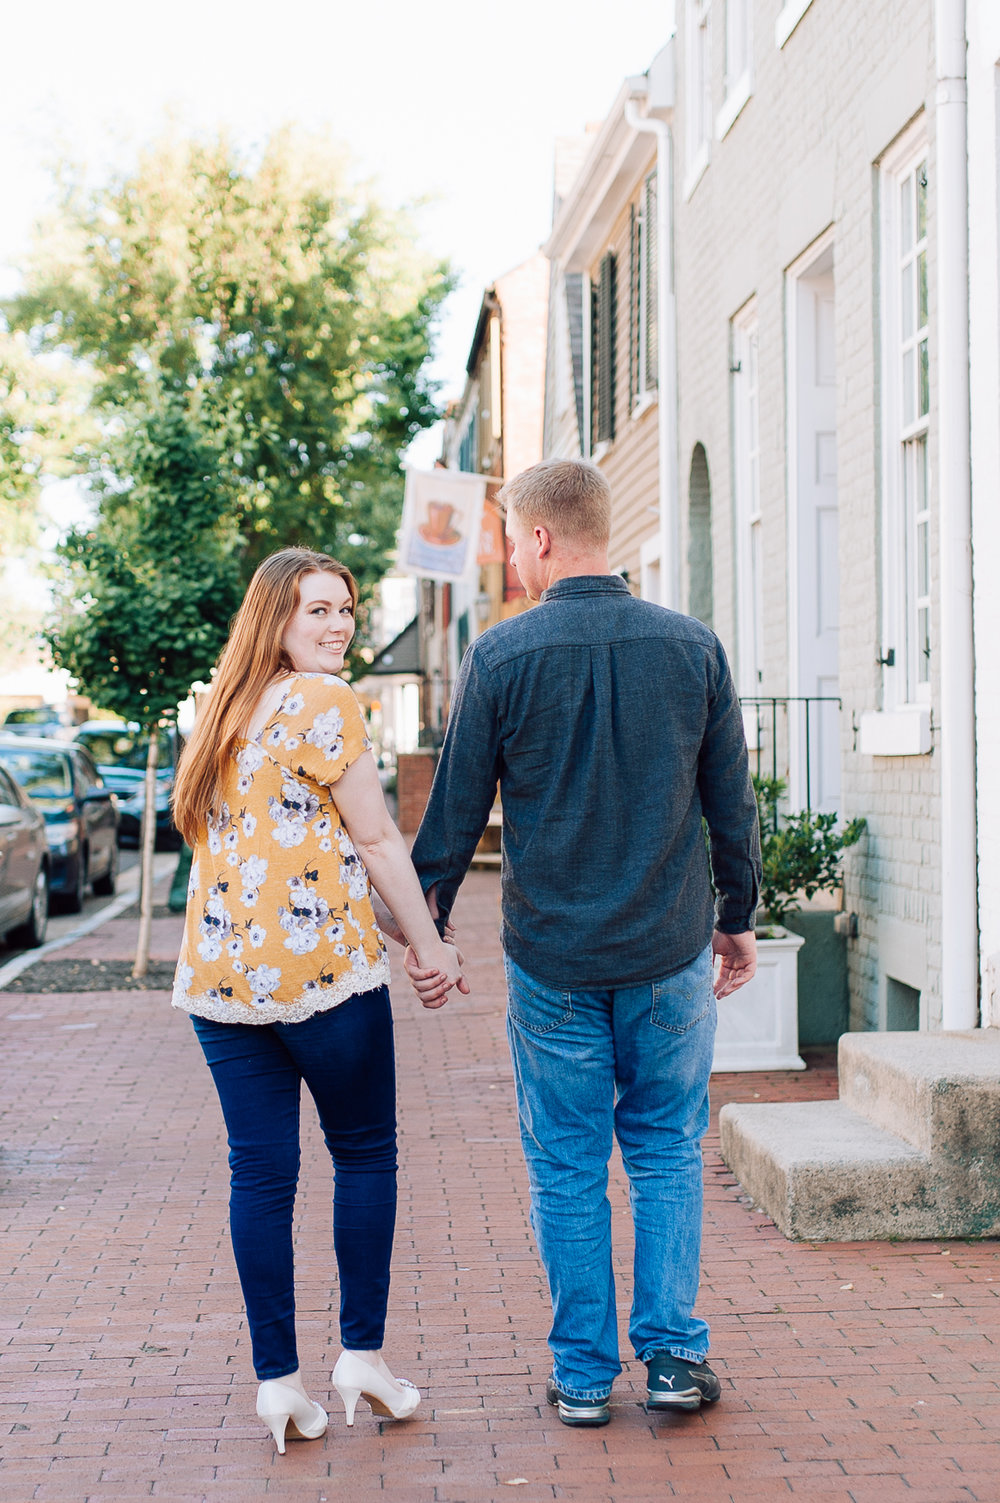 engagement_downtown_fredericksburg_virginiaweddingphotographer_youseephotography_ErinBrad (9).jpg